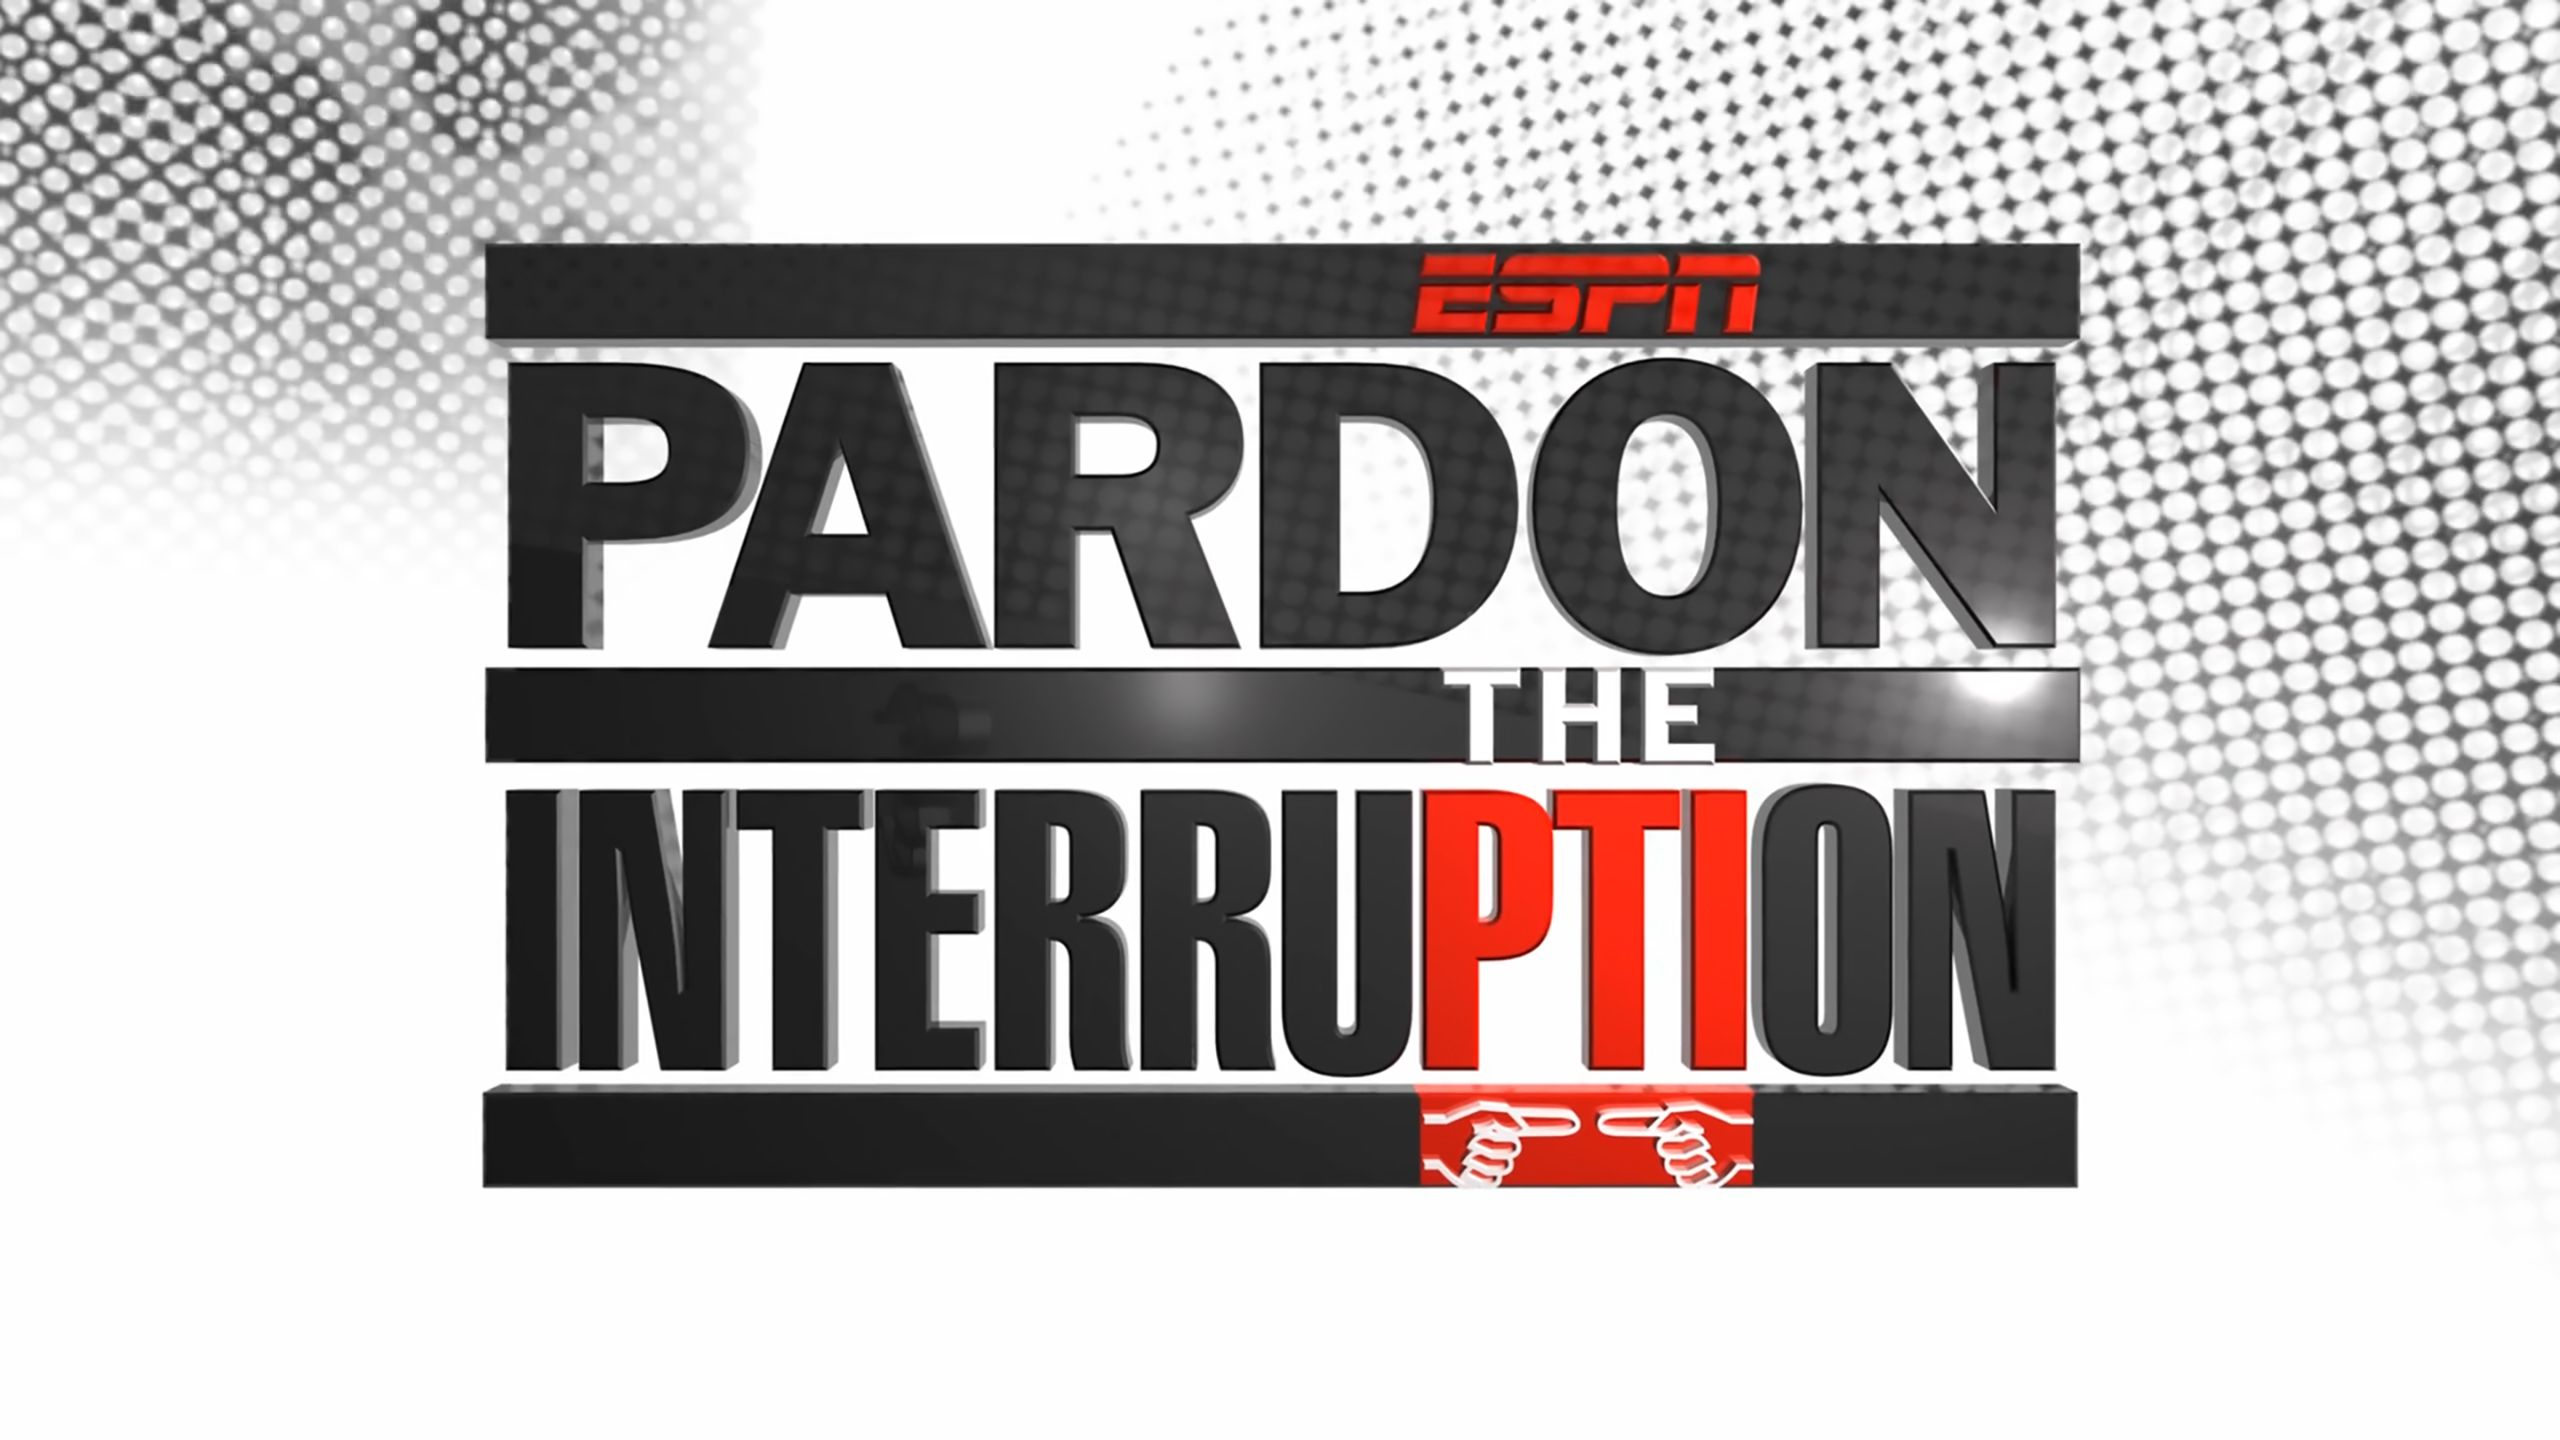 Mon, 10/16 - Pardon The Interruption